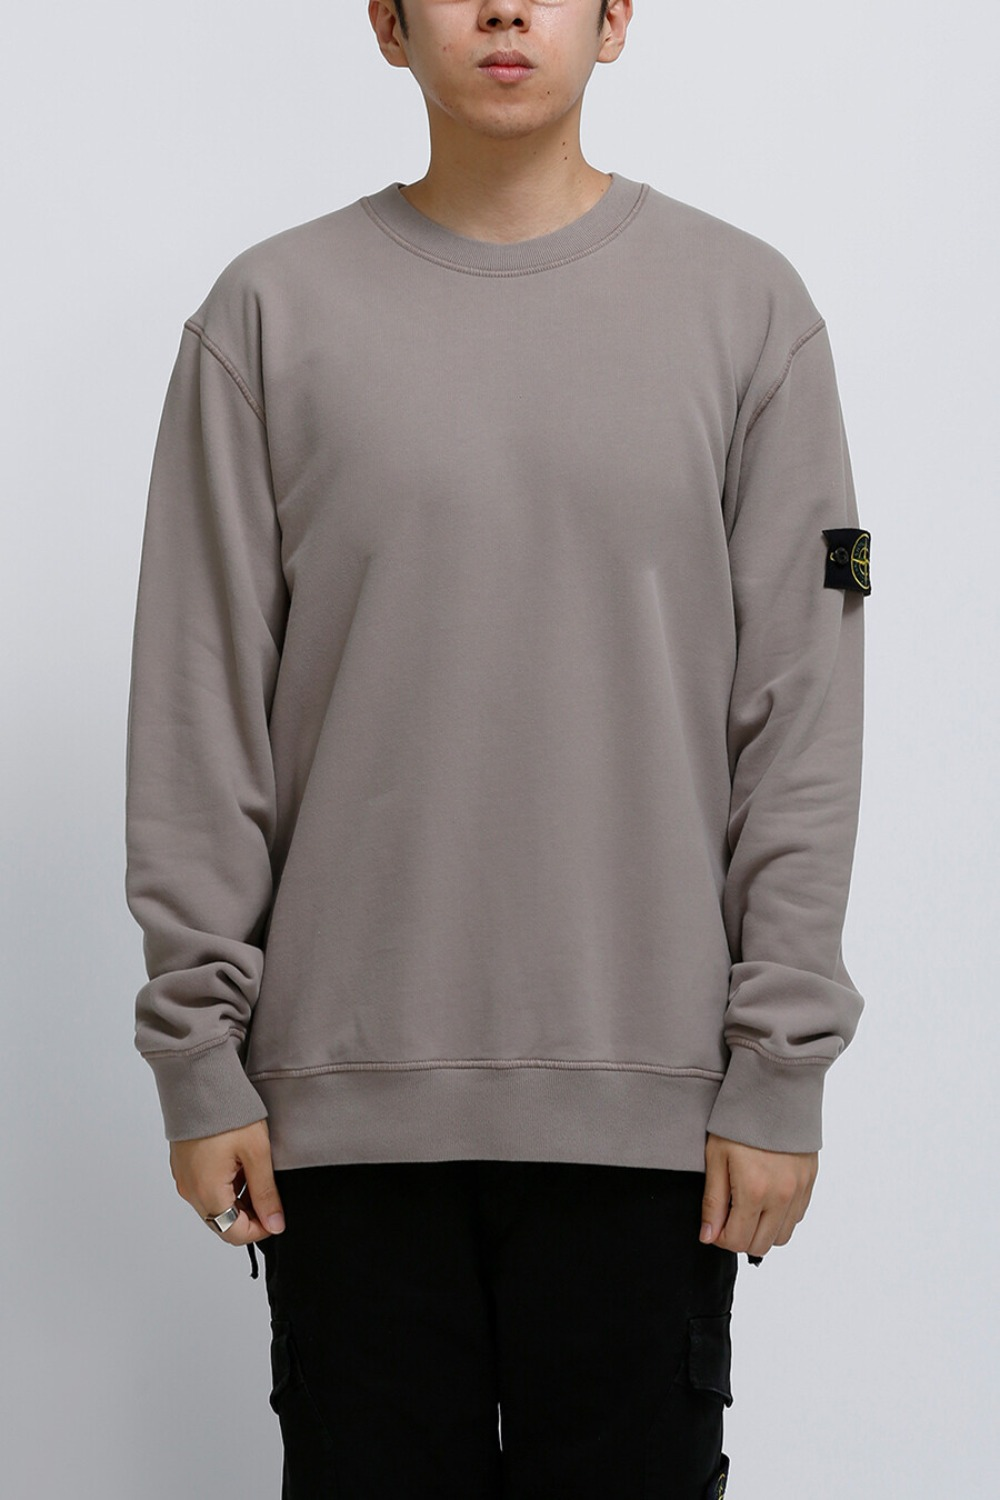 BRUSHED COTTON FLEECE GARMENT DYED SWEATSHIRT TAUPE